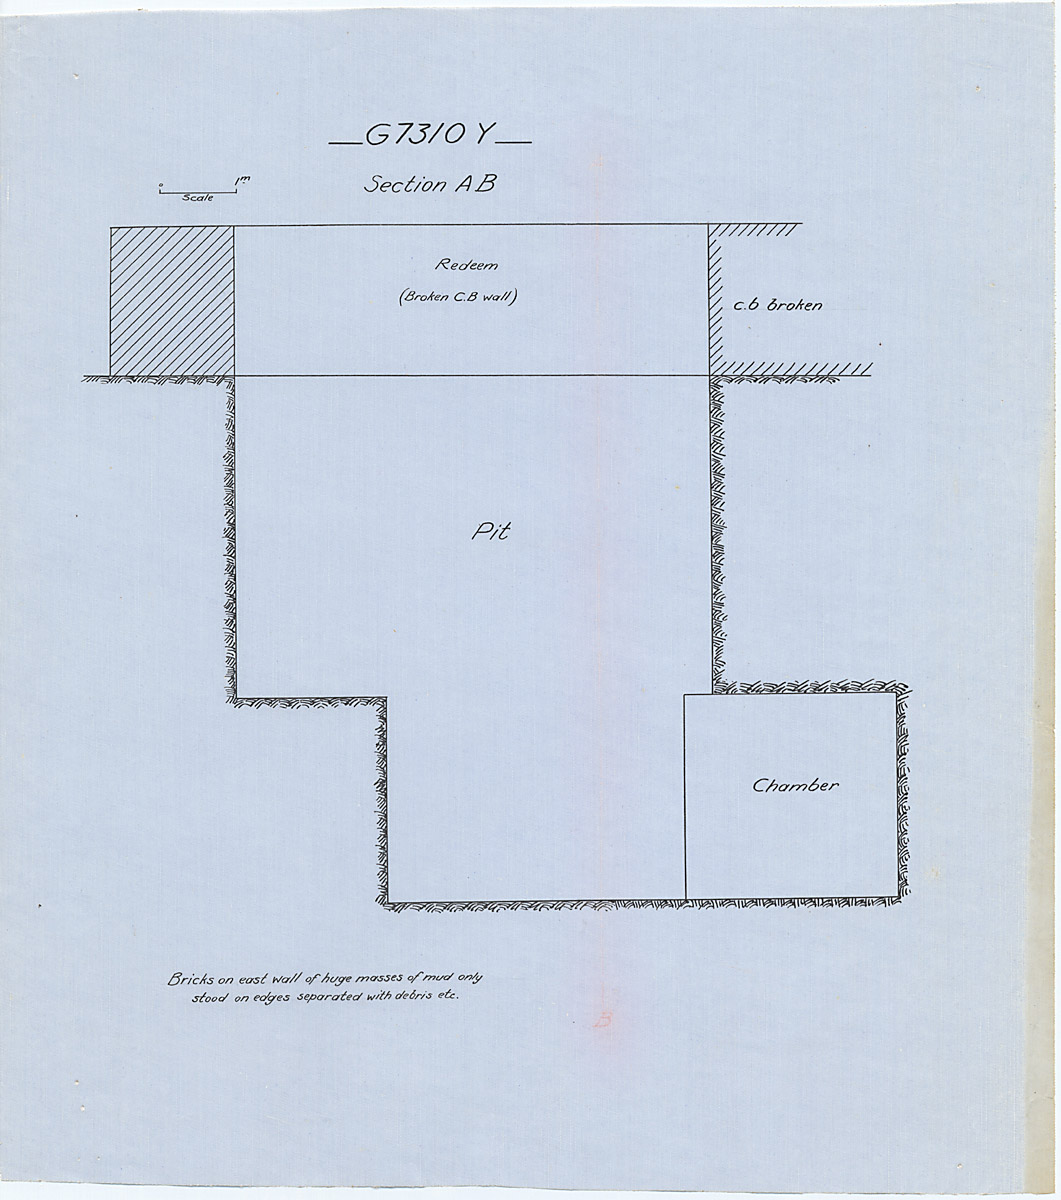 Maps and plans: G 7310-7320: G 7310, Shaft Y